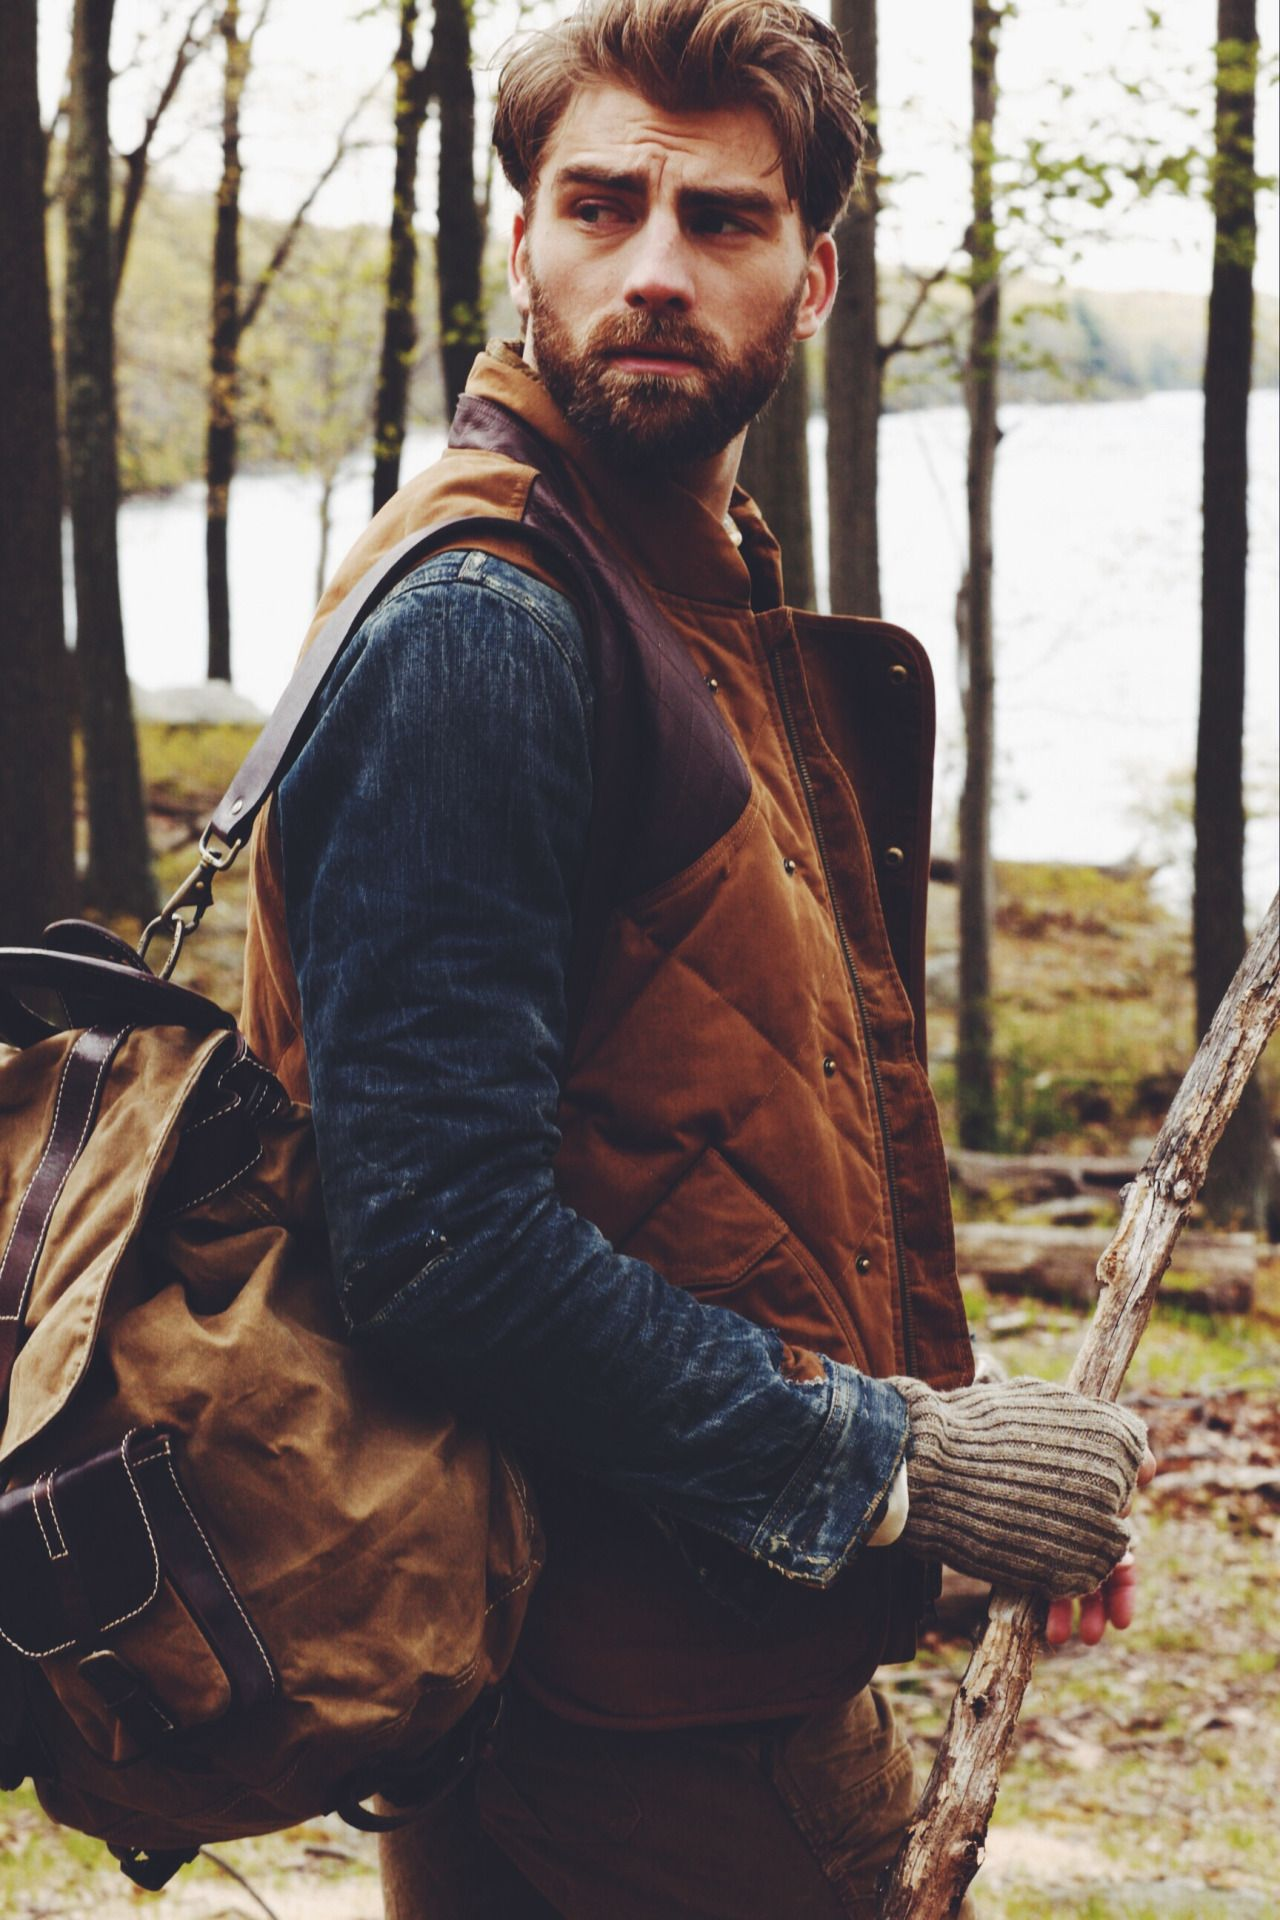 923f22a8adf2 fashion landscape nature outdoors rustic autumn Denim menswear editorial  Scenic beard cowboy Rugged outerwear man s best friend Outdoor Activities  style ...